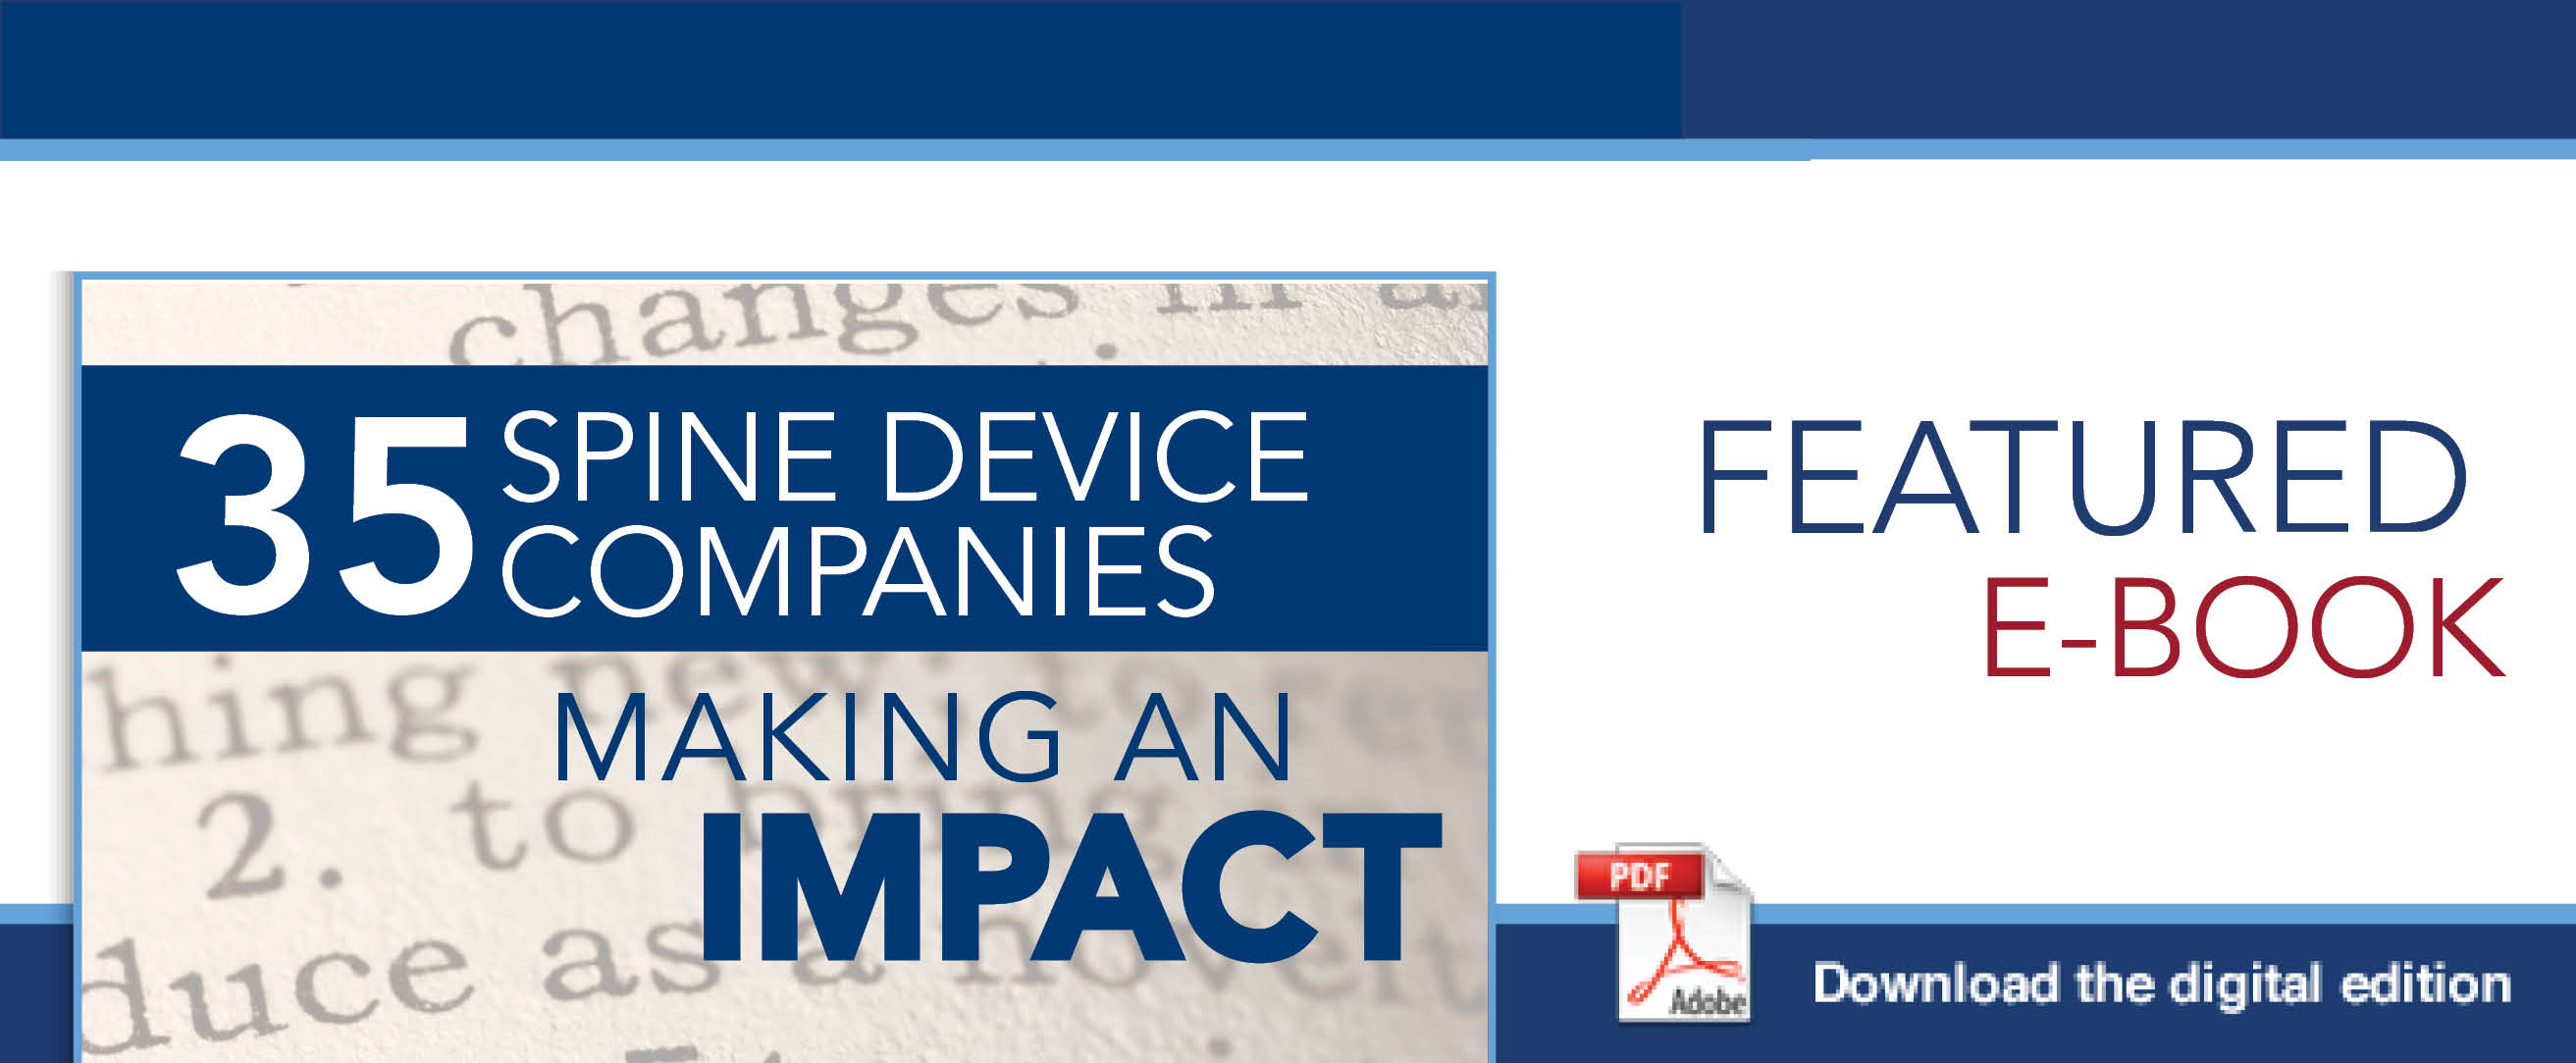 35 Spine Device Companies Making an Impact